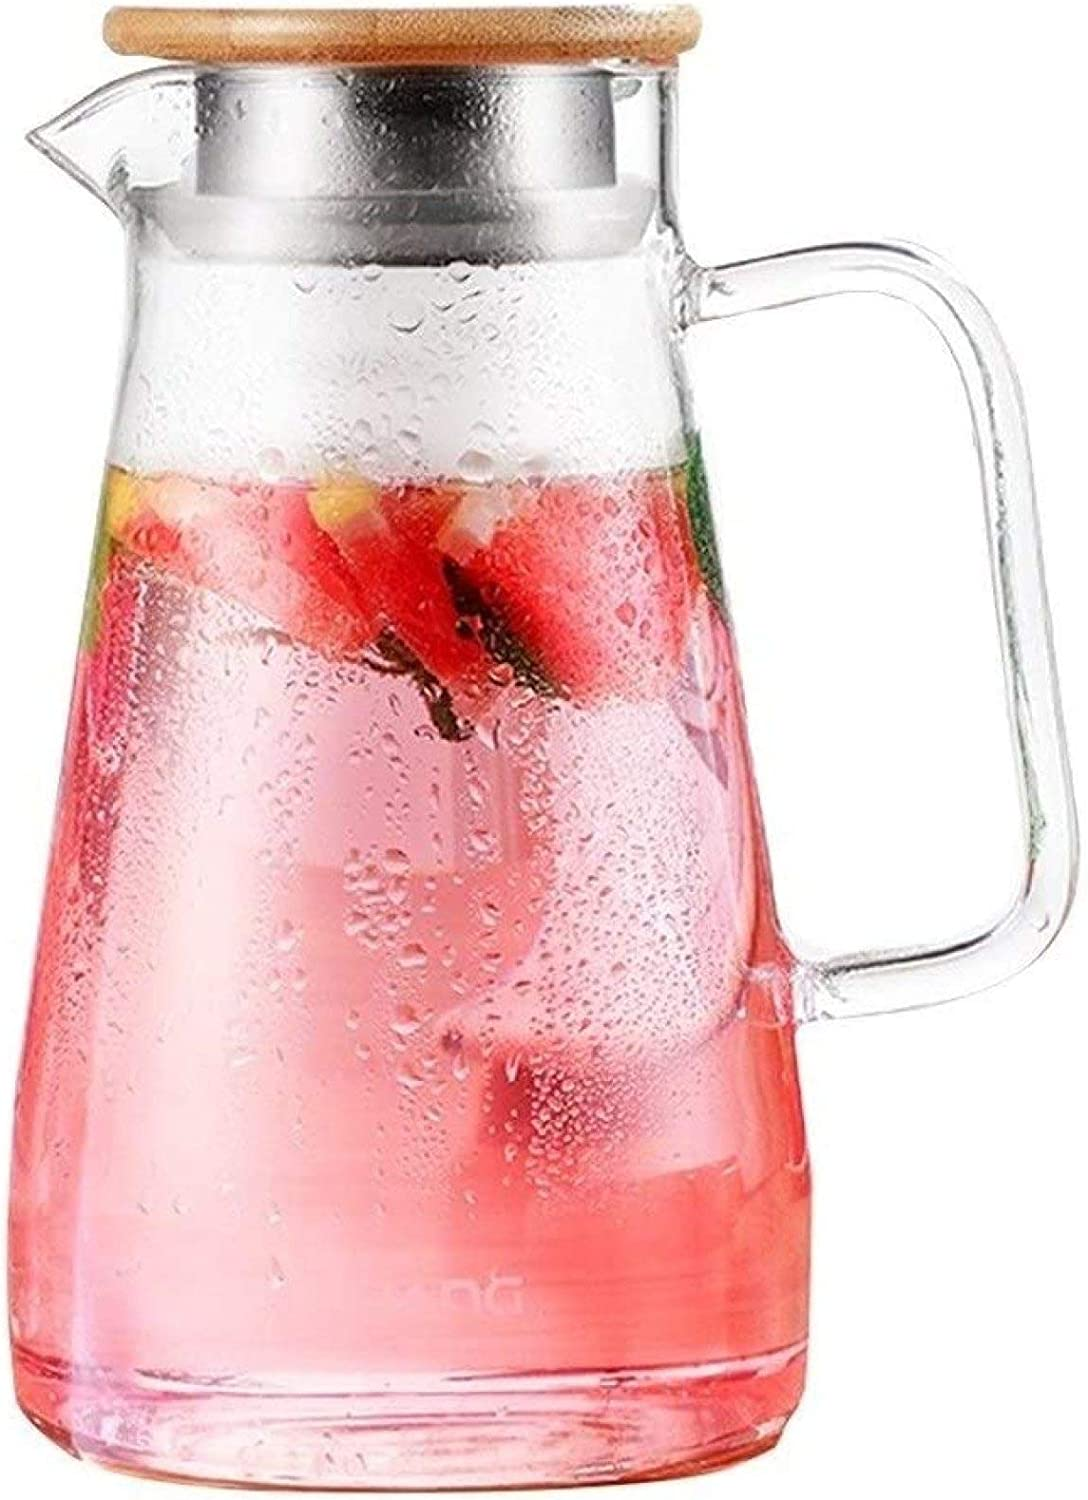 Glass pitcher Explosion-Proof Cooler Heat-Resistant Heat-Resistant Household teapot Capacity 1500ml,Clear-11.521cm